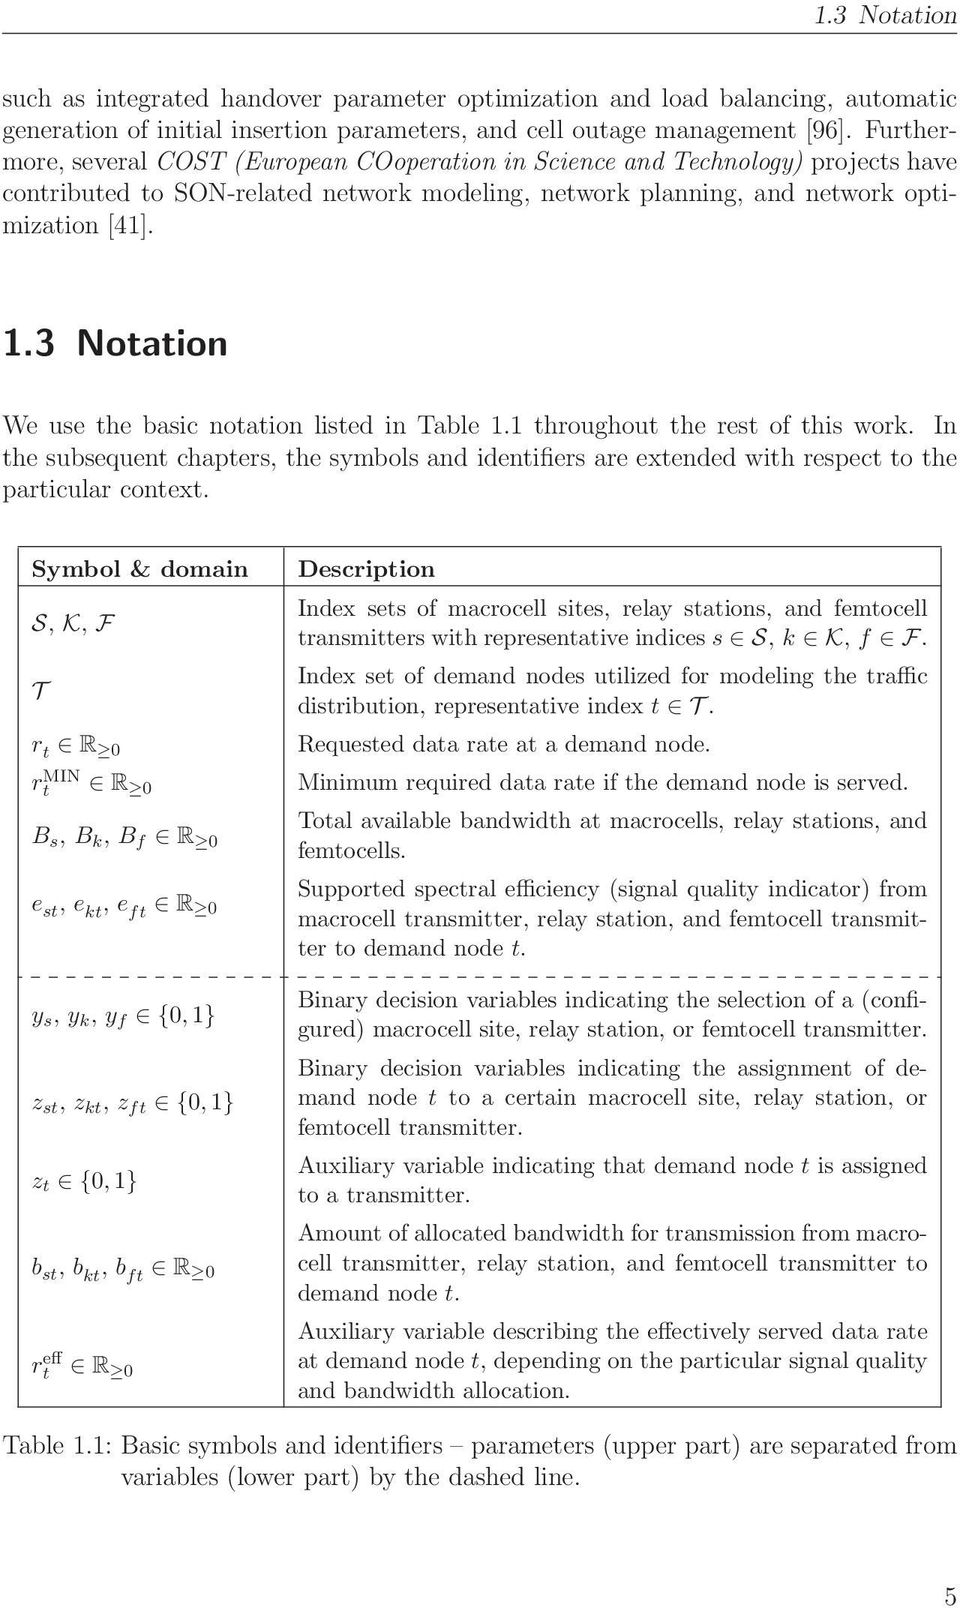 3 Notation We use the basic notation listed in Table 1.1 throughout the rest of this work. In the subsequent chapters, the symbols and identifiers are extended with respect to the particular context.